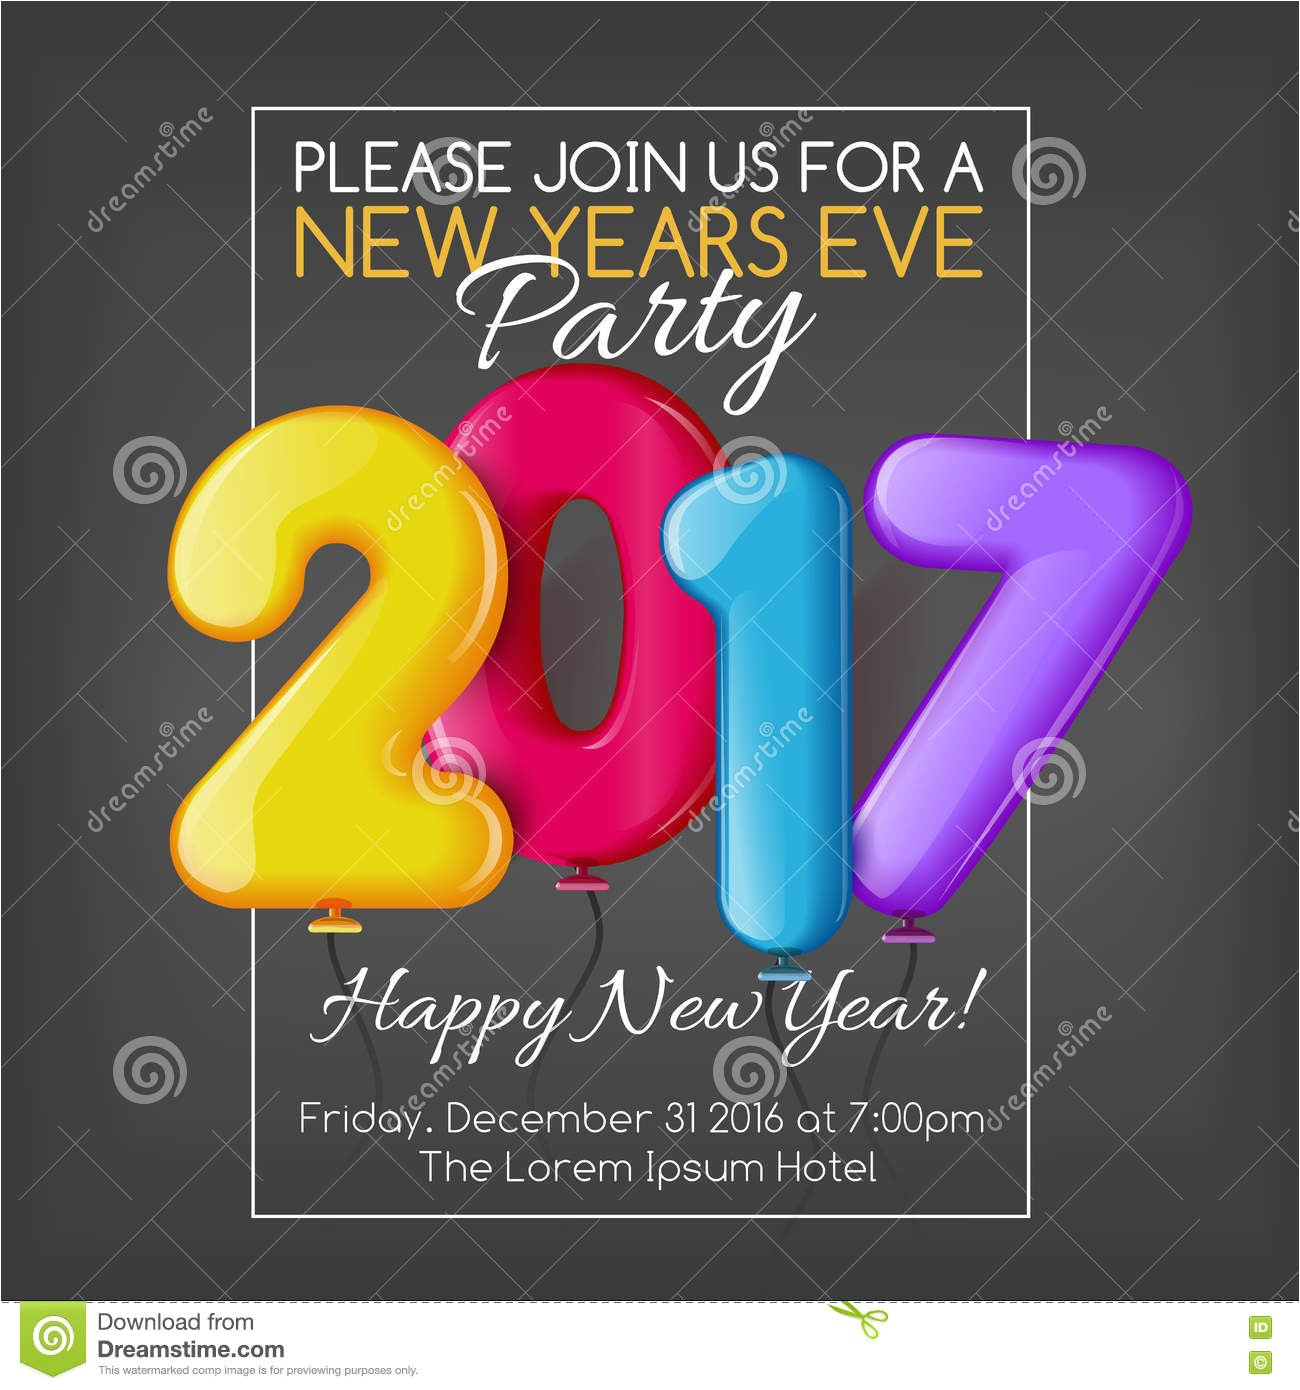 stock illustration merry christmas happy new year party invitation template vector illustration bright colorful xmas greeting image76843606